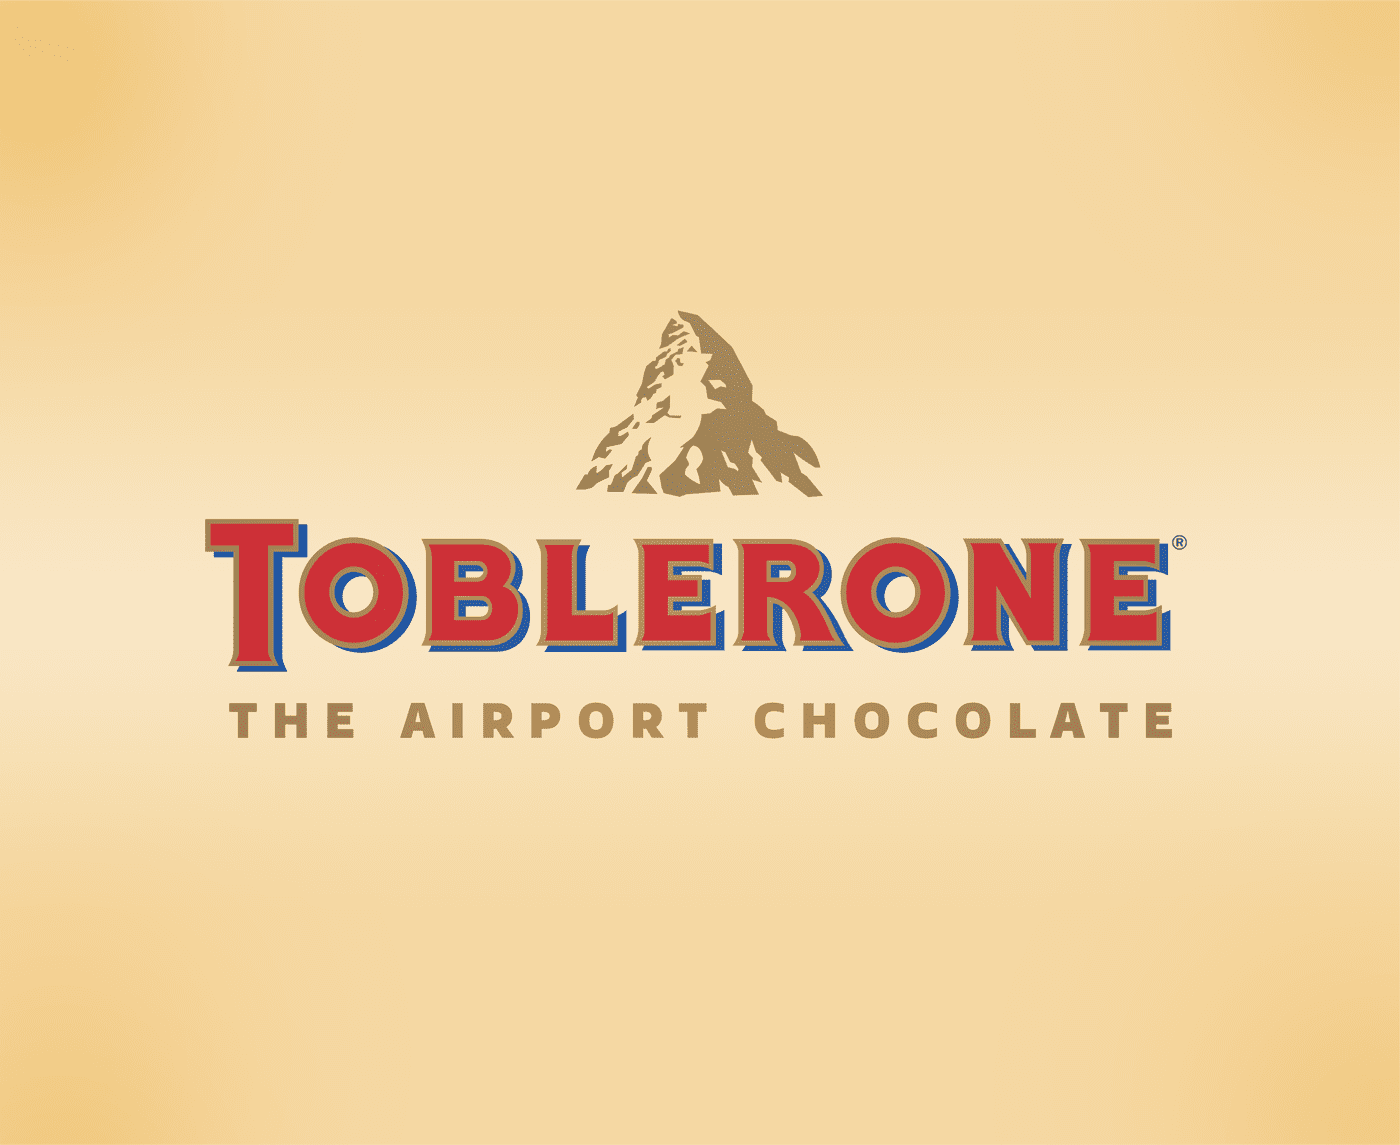 Toblerone - The airport Chocolate